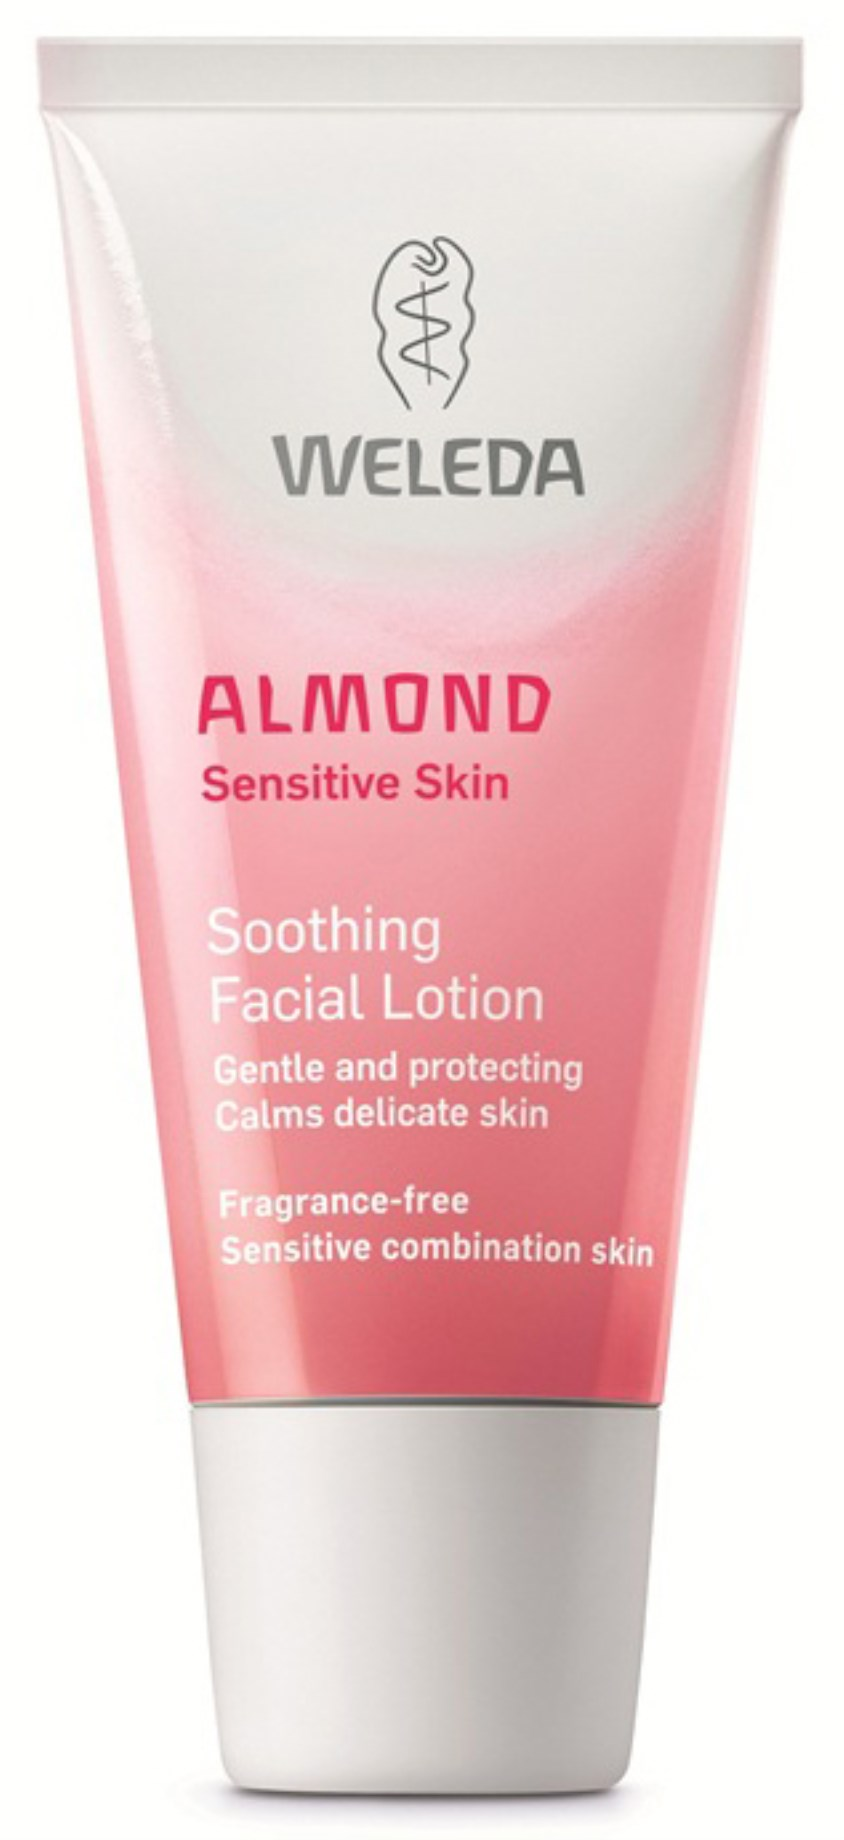 Weleda Almond Soothing Facial Lotion,  - Weleda